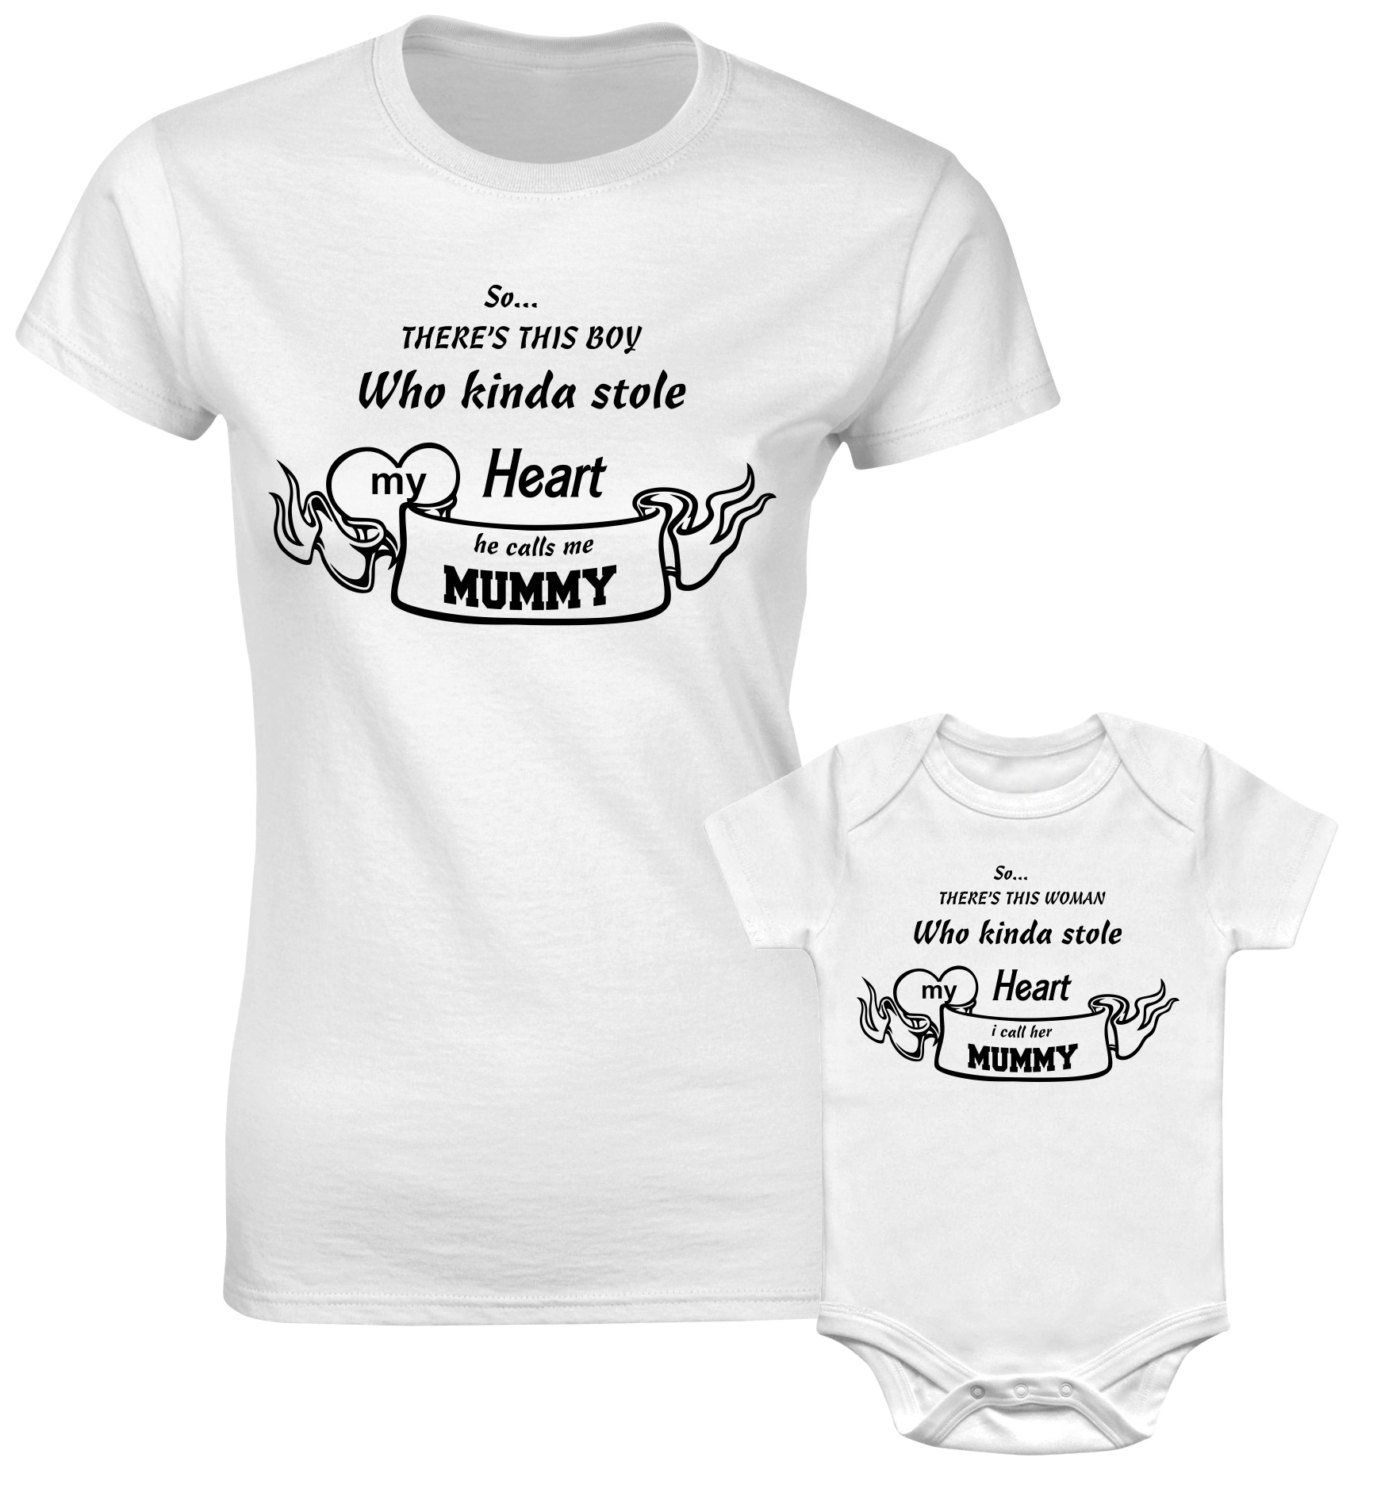 daddy daughter shirts,matching,baby bodysuit,cute kids clothes So theres this guy who kinda stole my heart baby shower gift toddler shirt